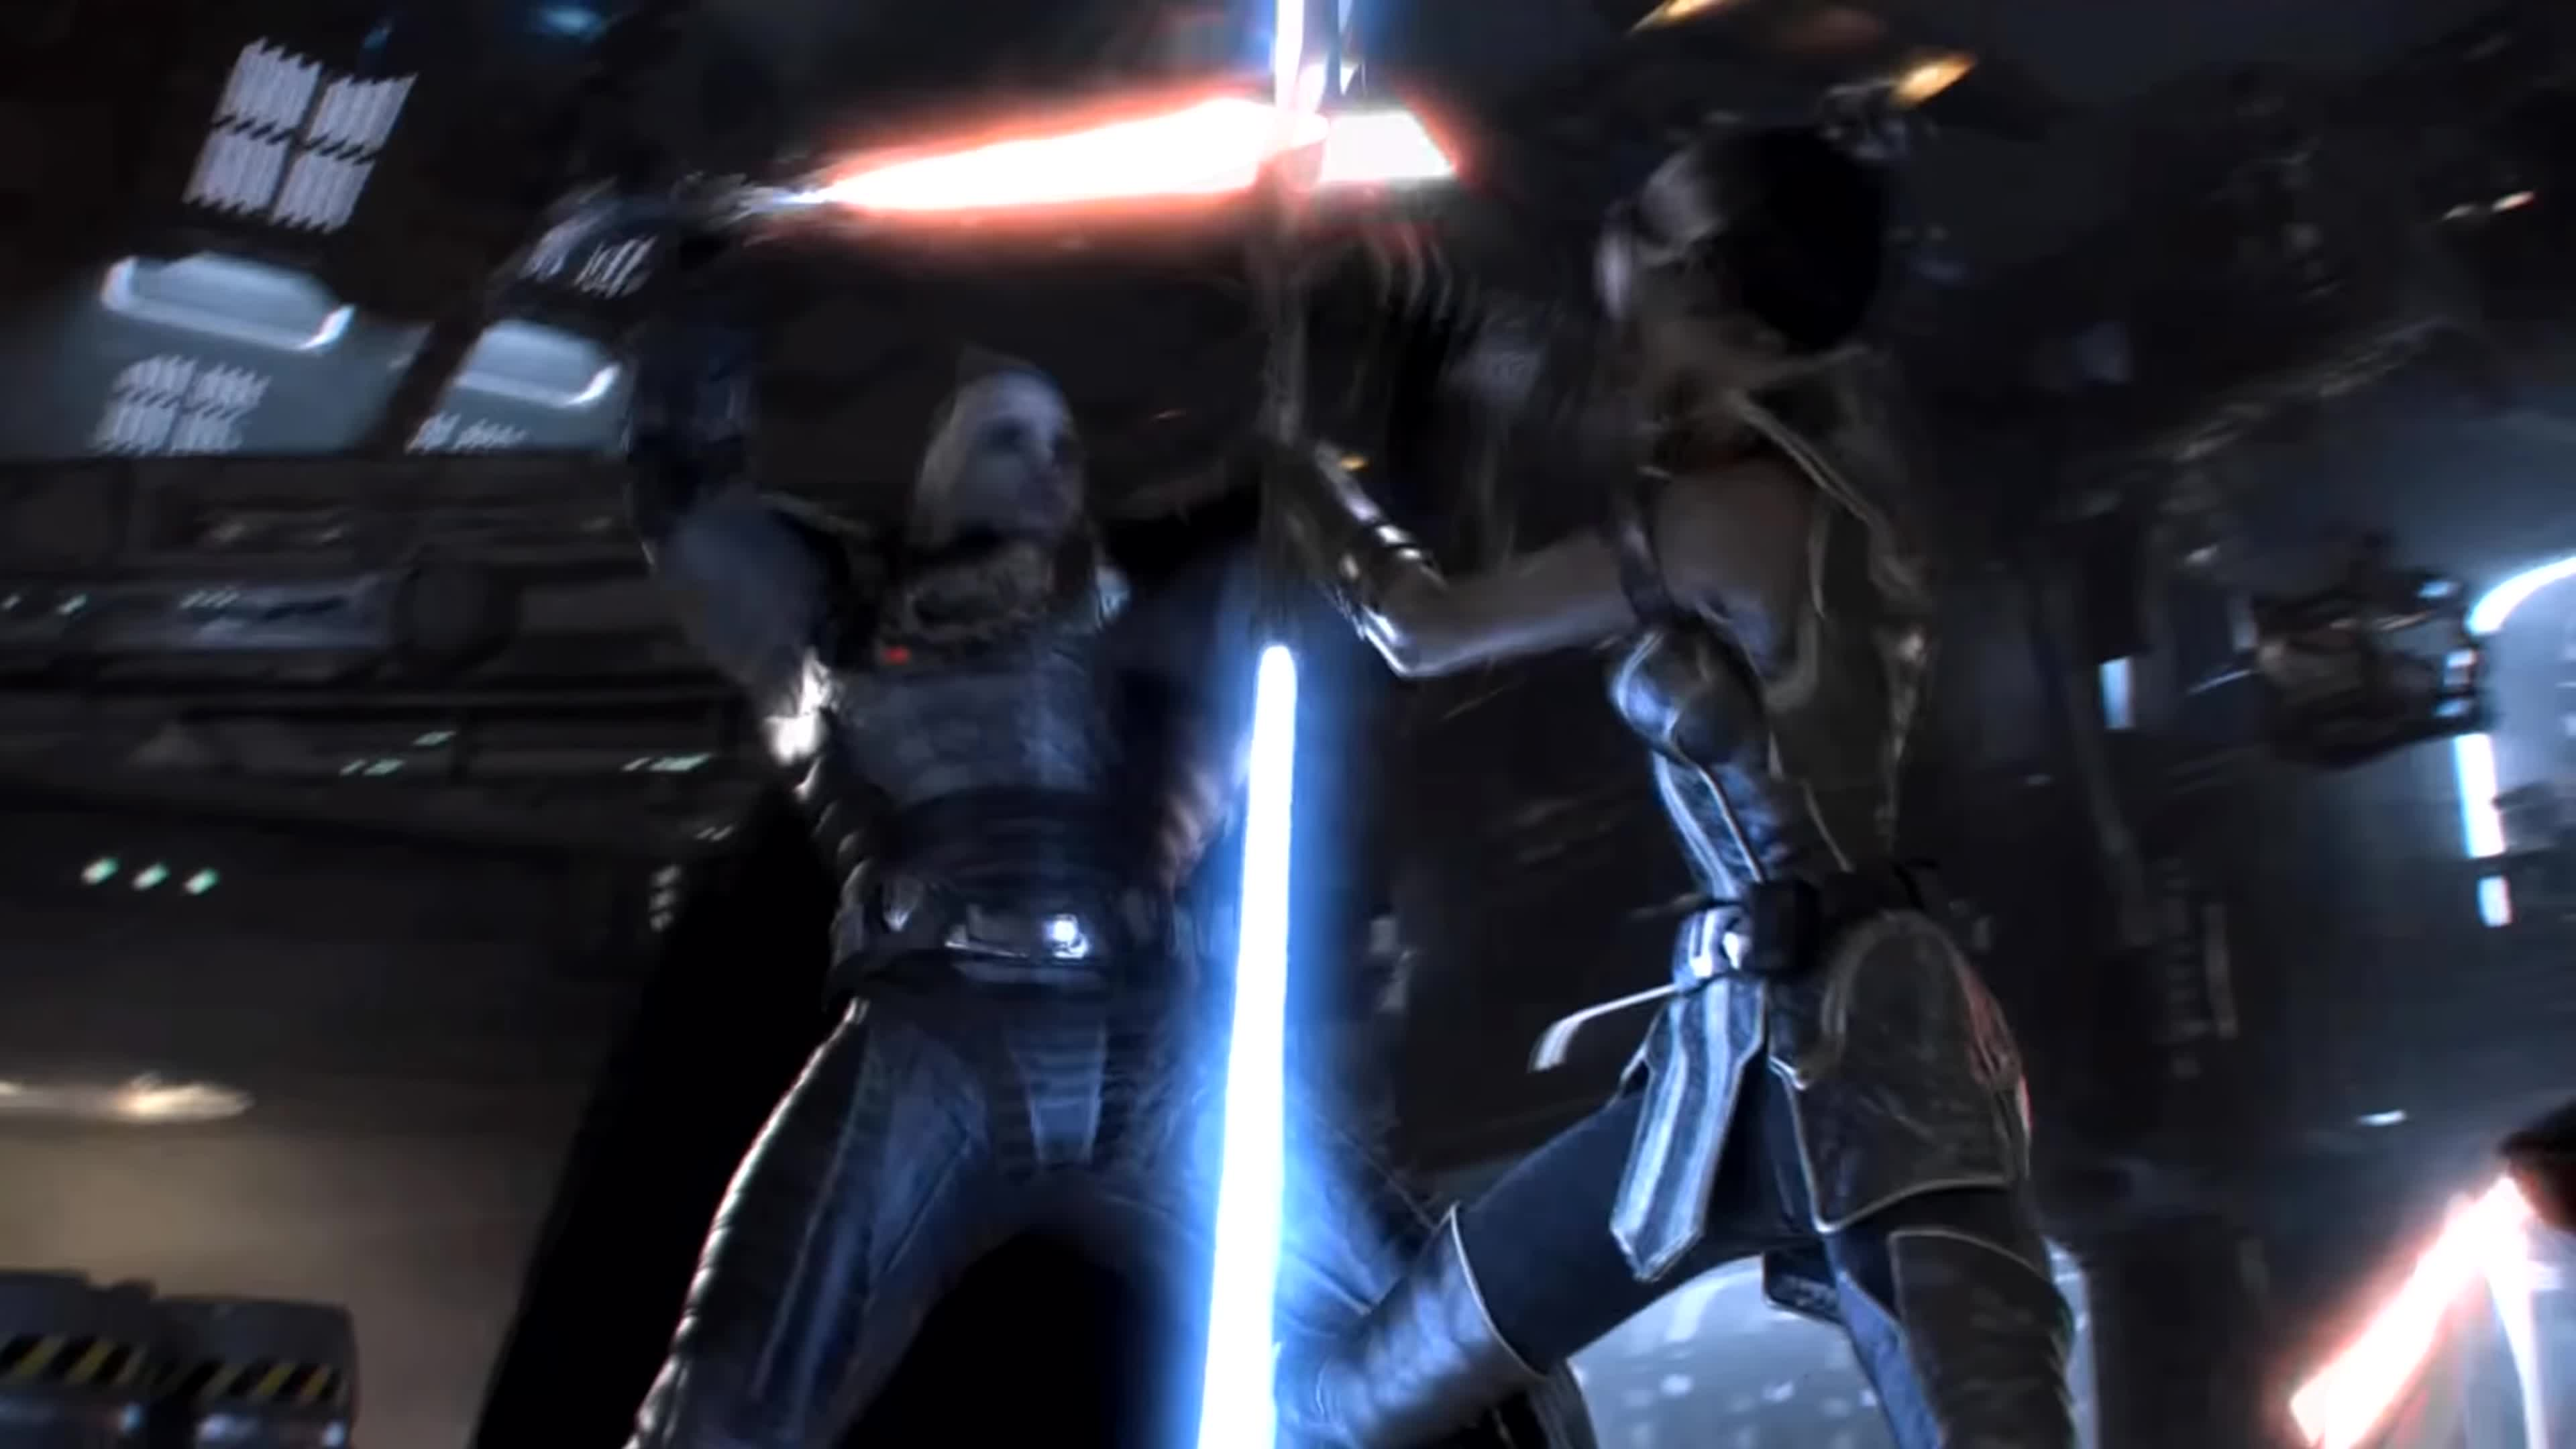 Star Wars 4k Gifs Search   Search & Share on Homdor